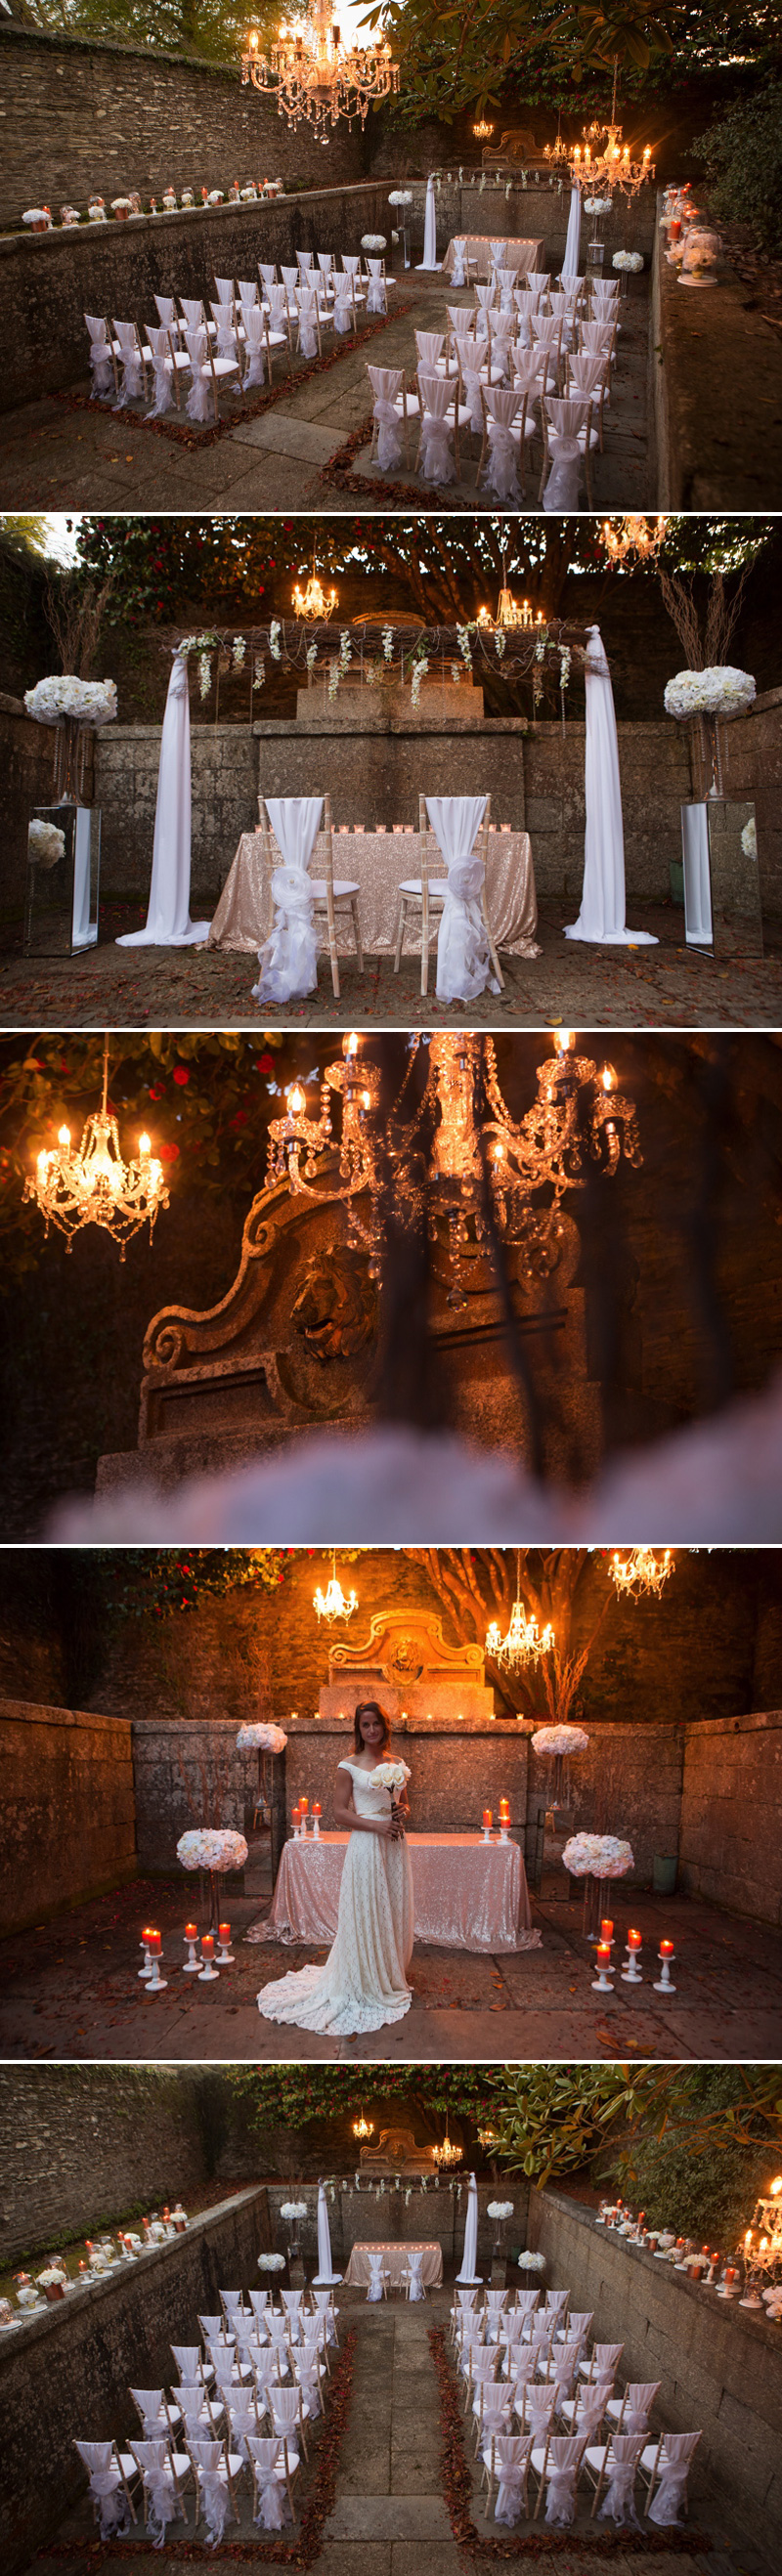 coco-wedding-venues-boconnoc-house-styled-shoot-wedding-venues-in-cornwall-3